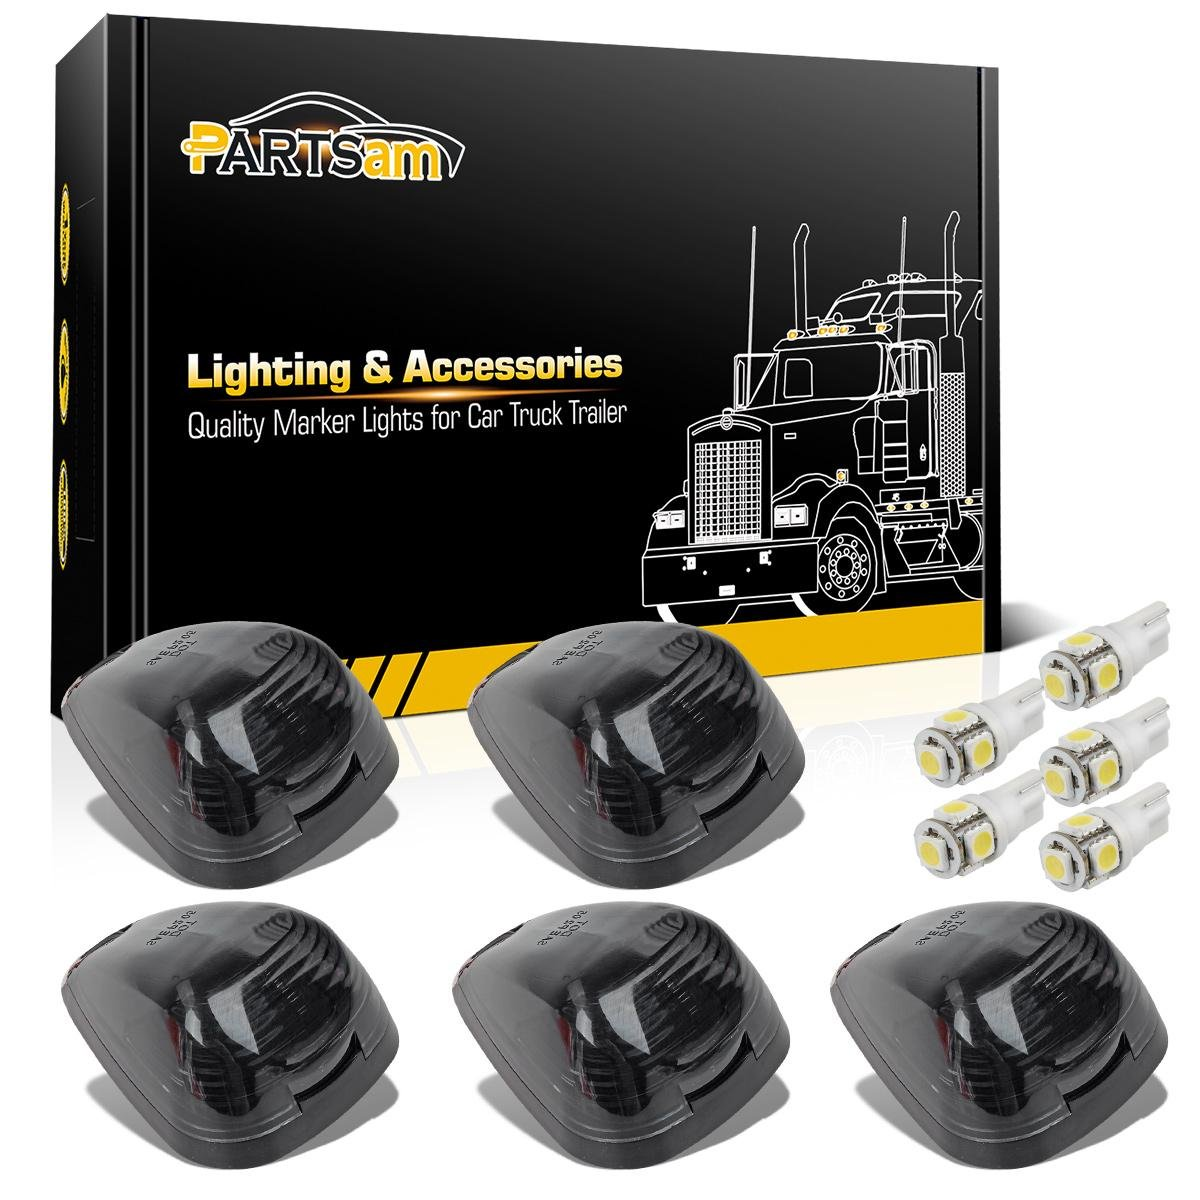 Partsam 5x Black Smoke Lens Cab Roof Marker Running Lamps w/White LED Lights Replacement For 1999-2016 Ford F150 F250 F350 F450 F550 F650 F750 E150 E250 E350 E450 Super Duty Pickup Trucks